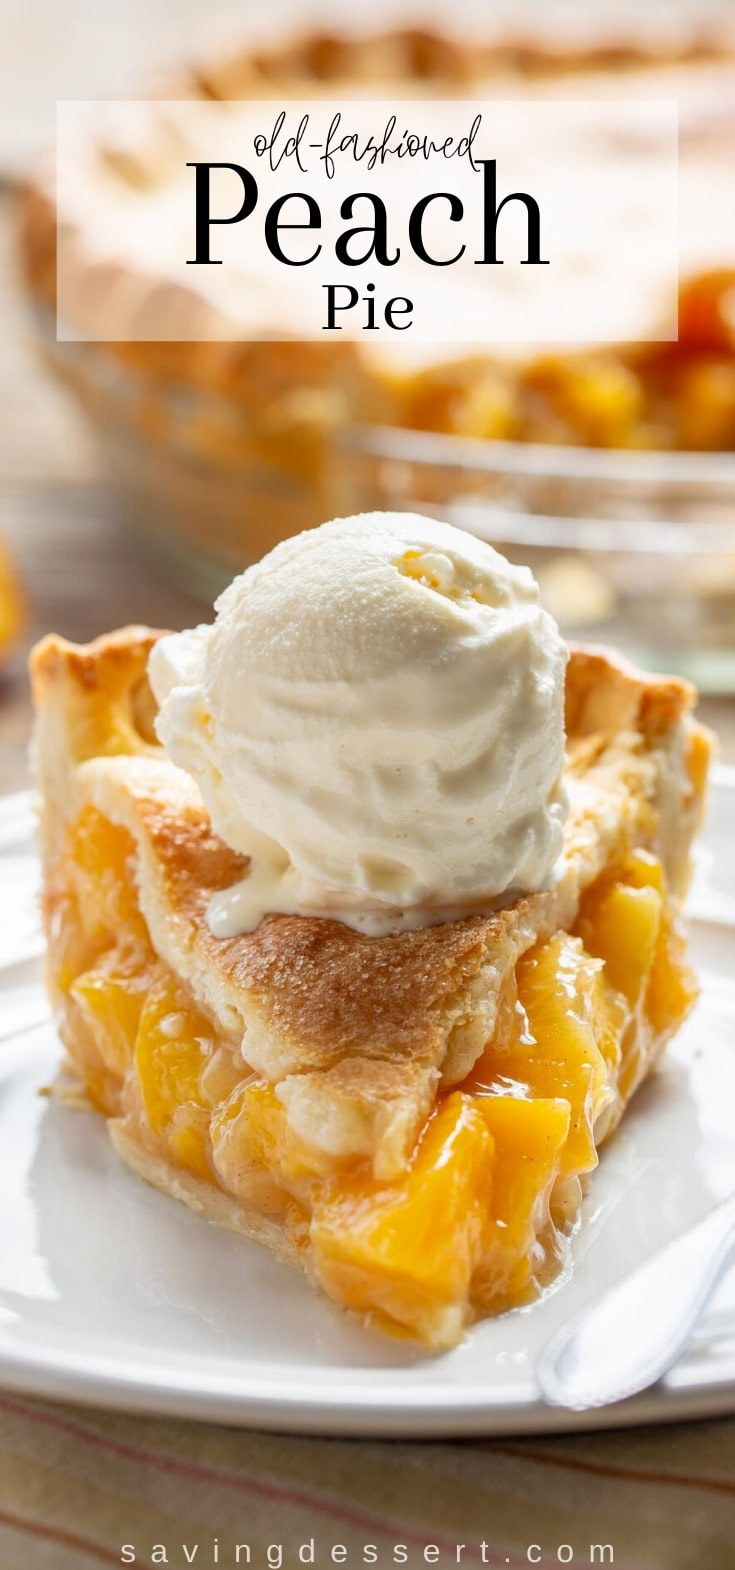 a slice of fresh peach pie topped with a scoop of vanilla ice cream